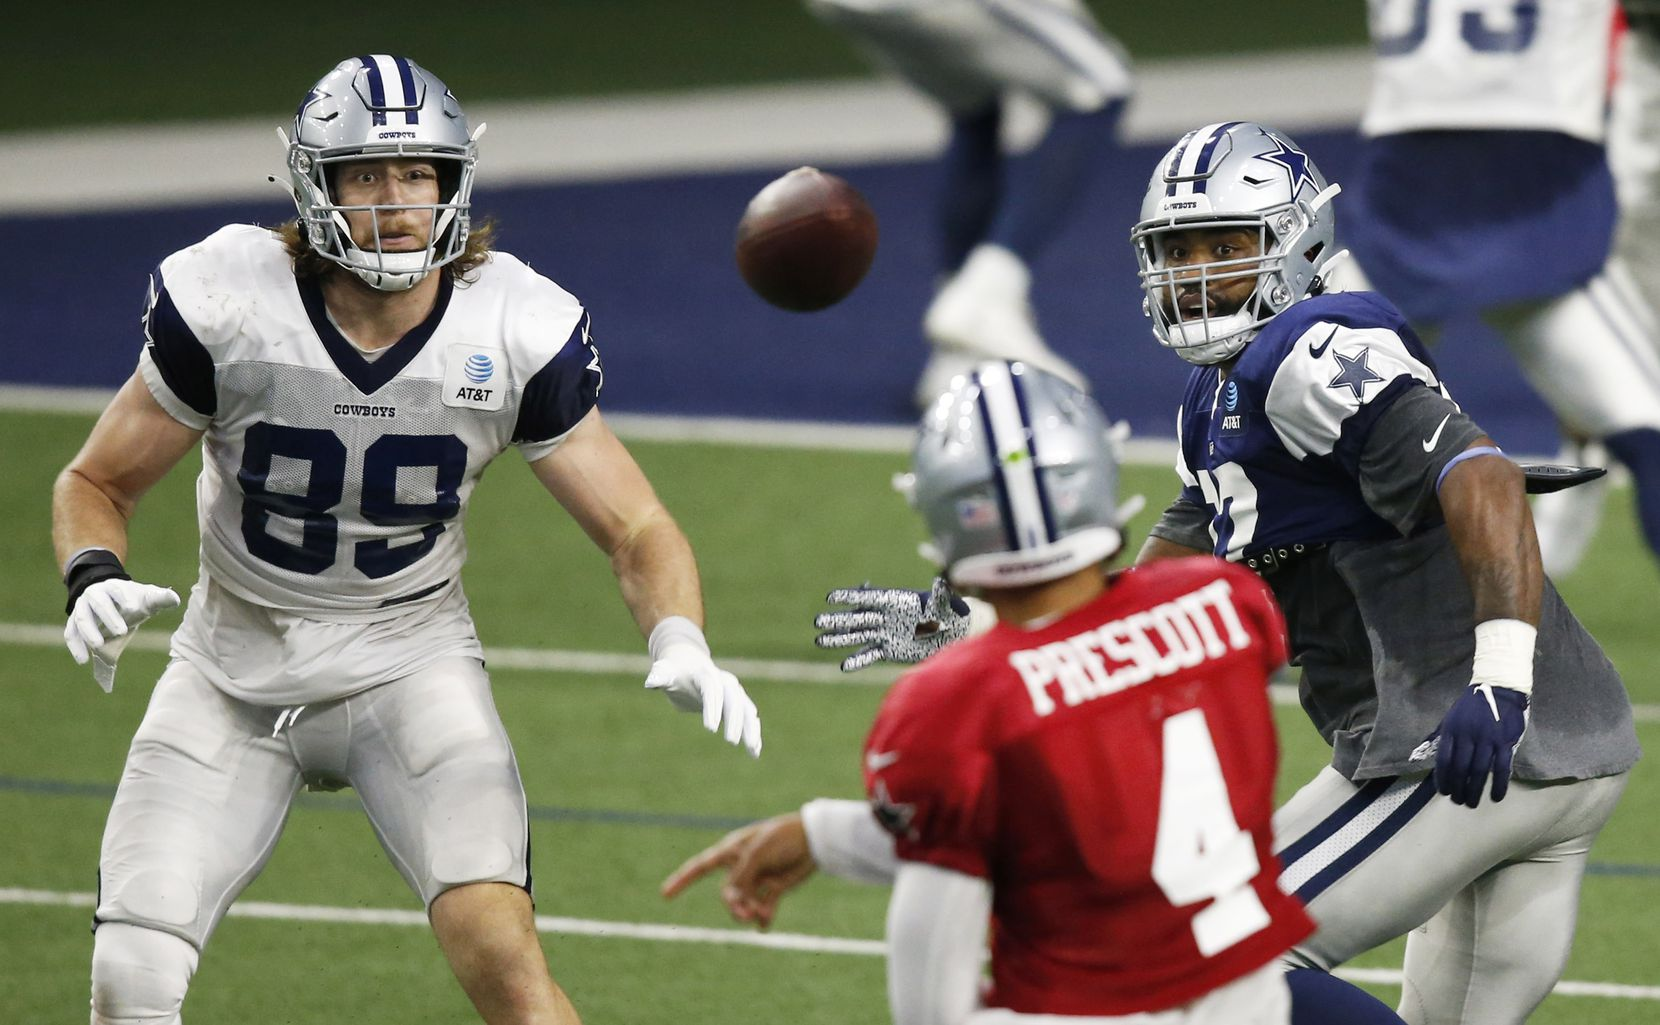 Dallas Cowboys tight end Blake Jarwin (89) and Dallas Cowboys defensive end Everson Griffen (97) watch as Dallas Cowboys quarterback Dak Prescott (4) passes the ball during training camp at the Dallas Cowboys headquarters at The Star in Frisco, Texas on Monday, August 24, 2020. (Vernon Bryant/The Dallas Morning News)